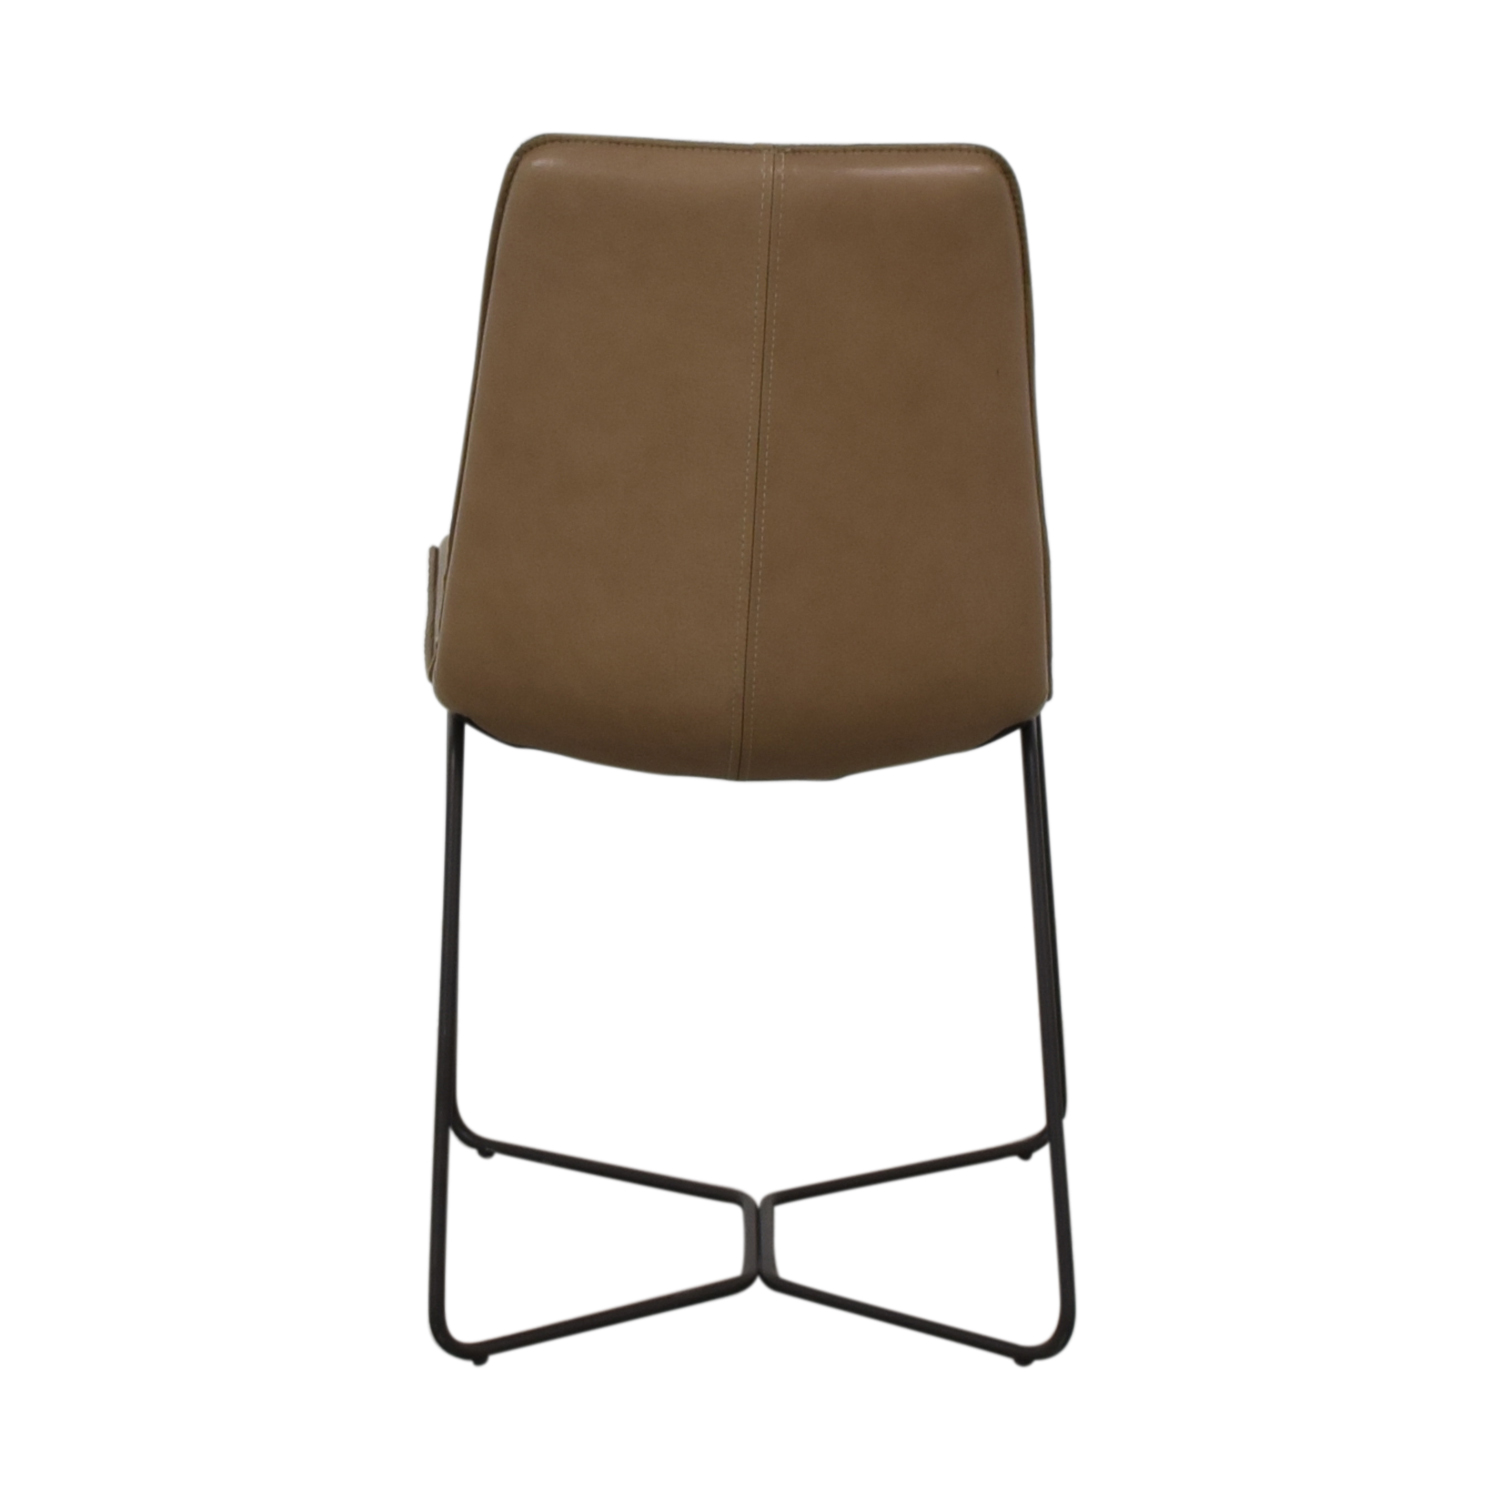 West Elm West Elm Leather Slope Dining Chair nyc